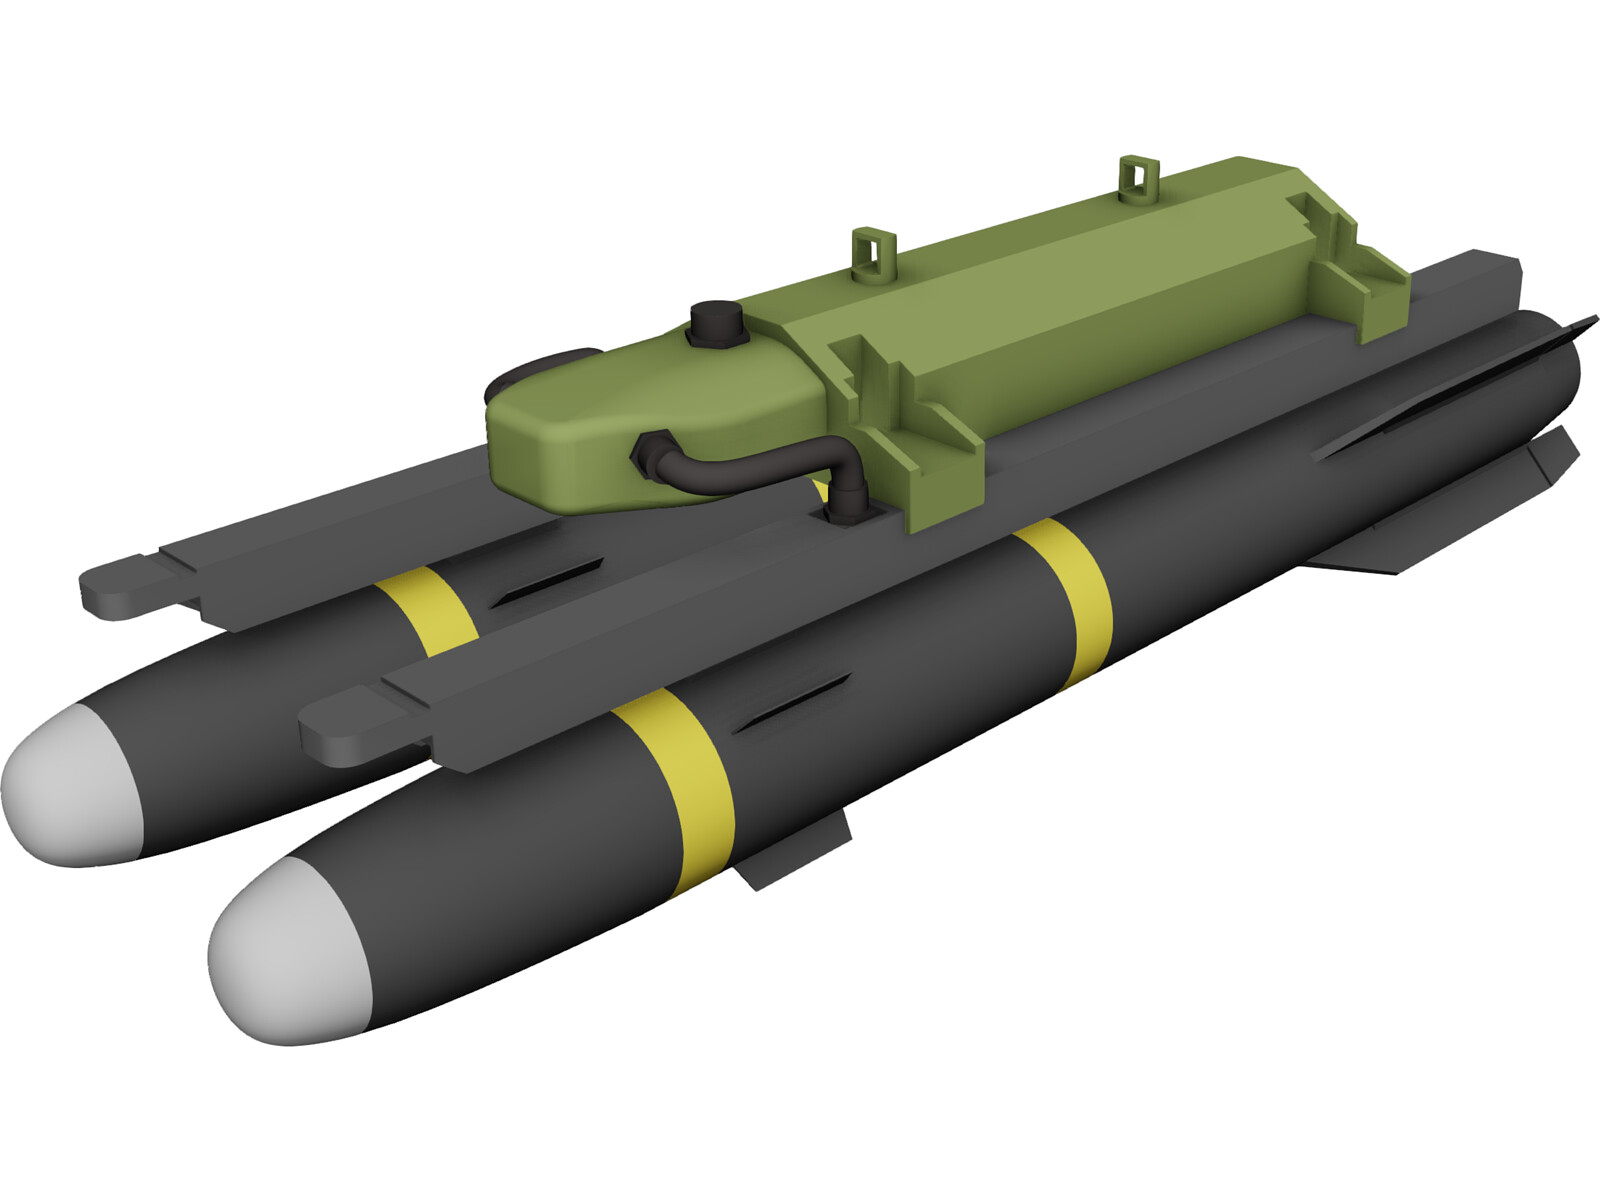 Hellfire Missile with Launcher